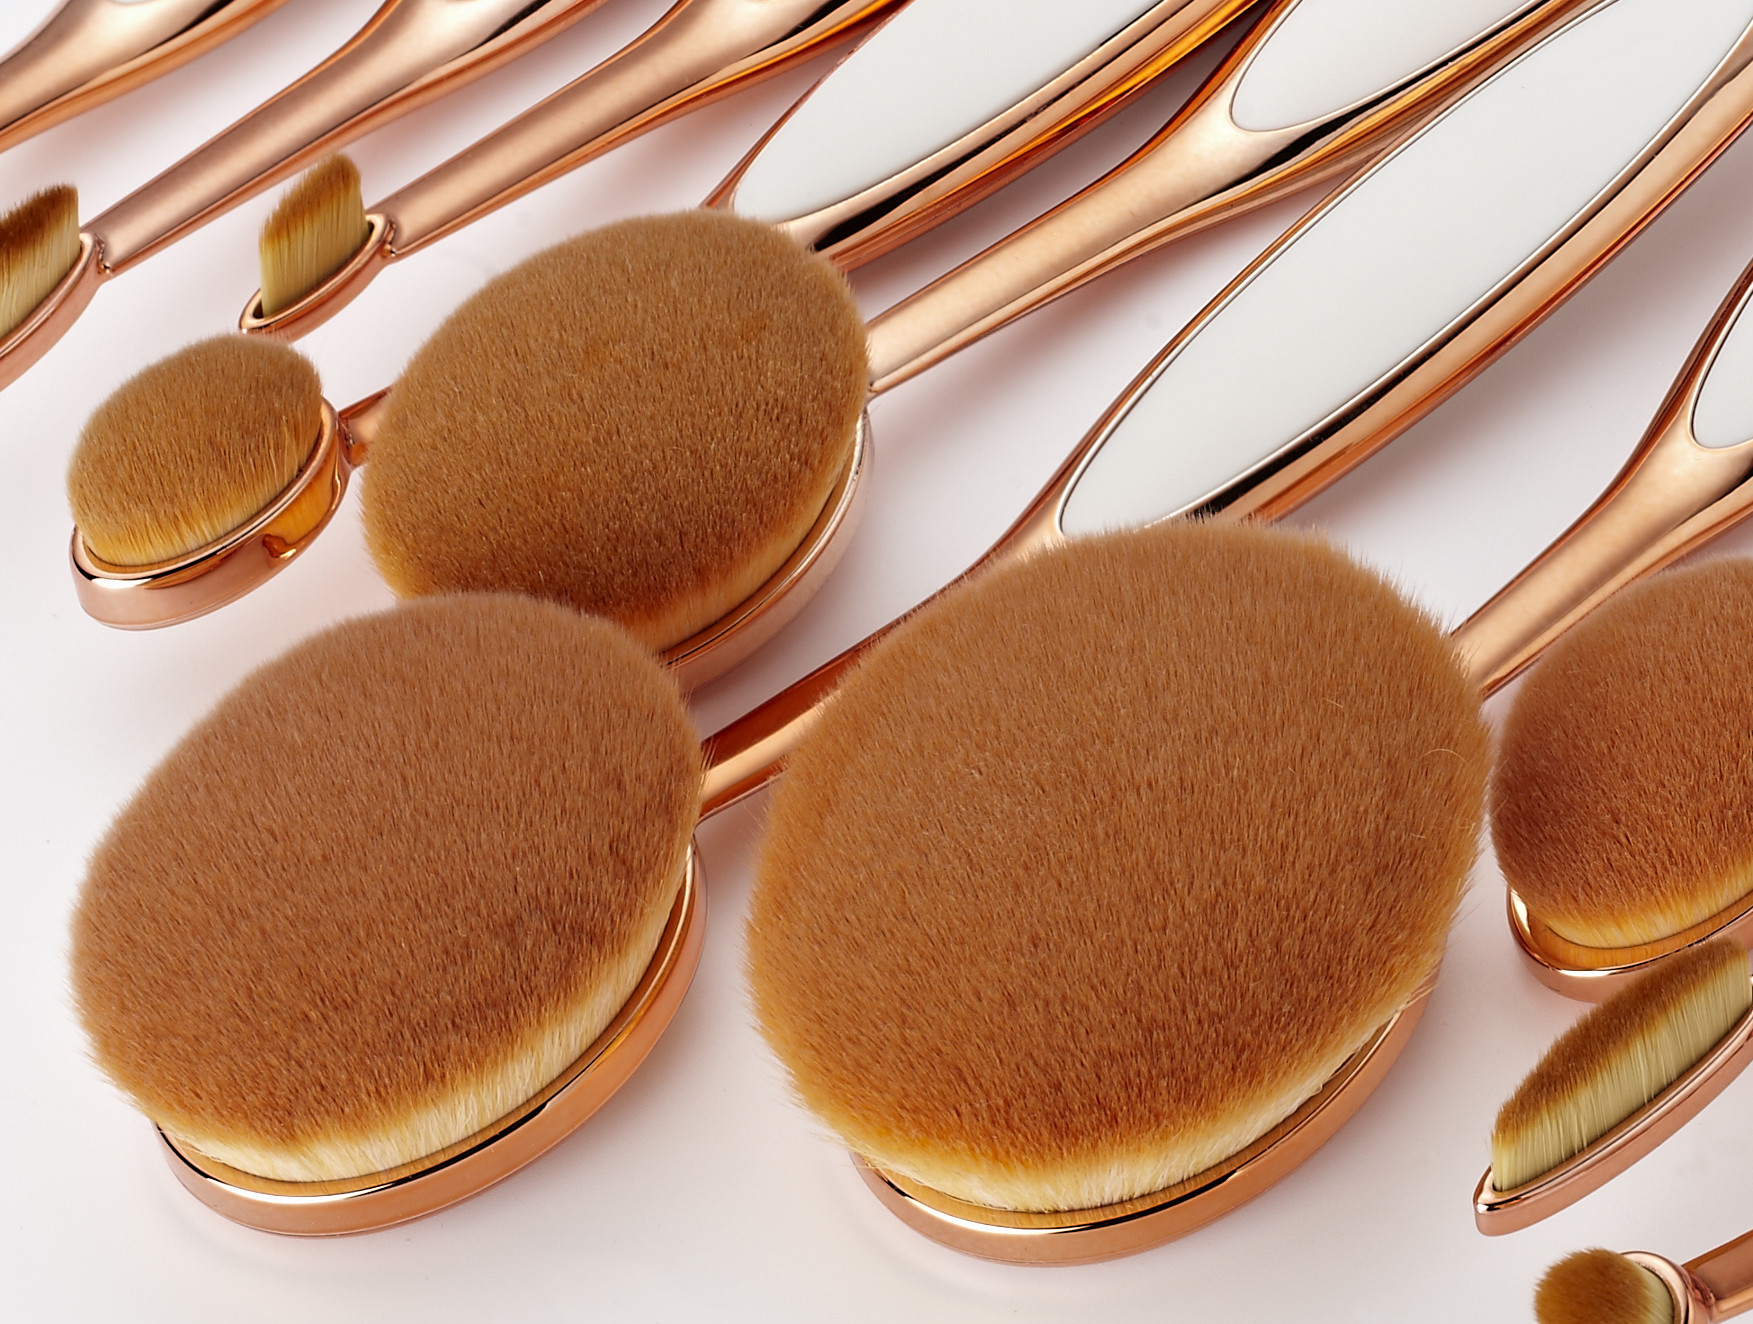 10 Pcs Tooth Cosmetic Makeup Brushes Professional , Oval Beauty Brush Set